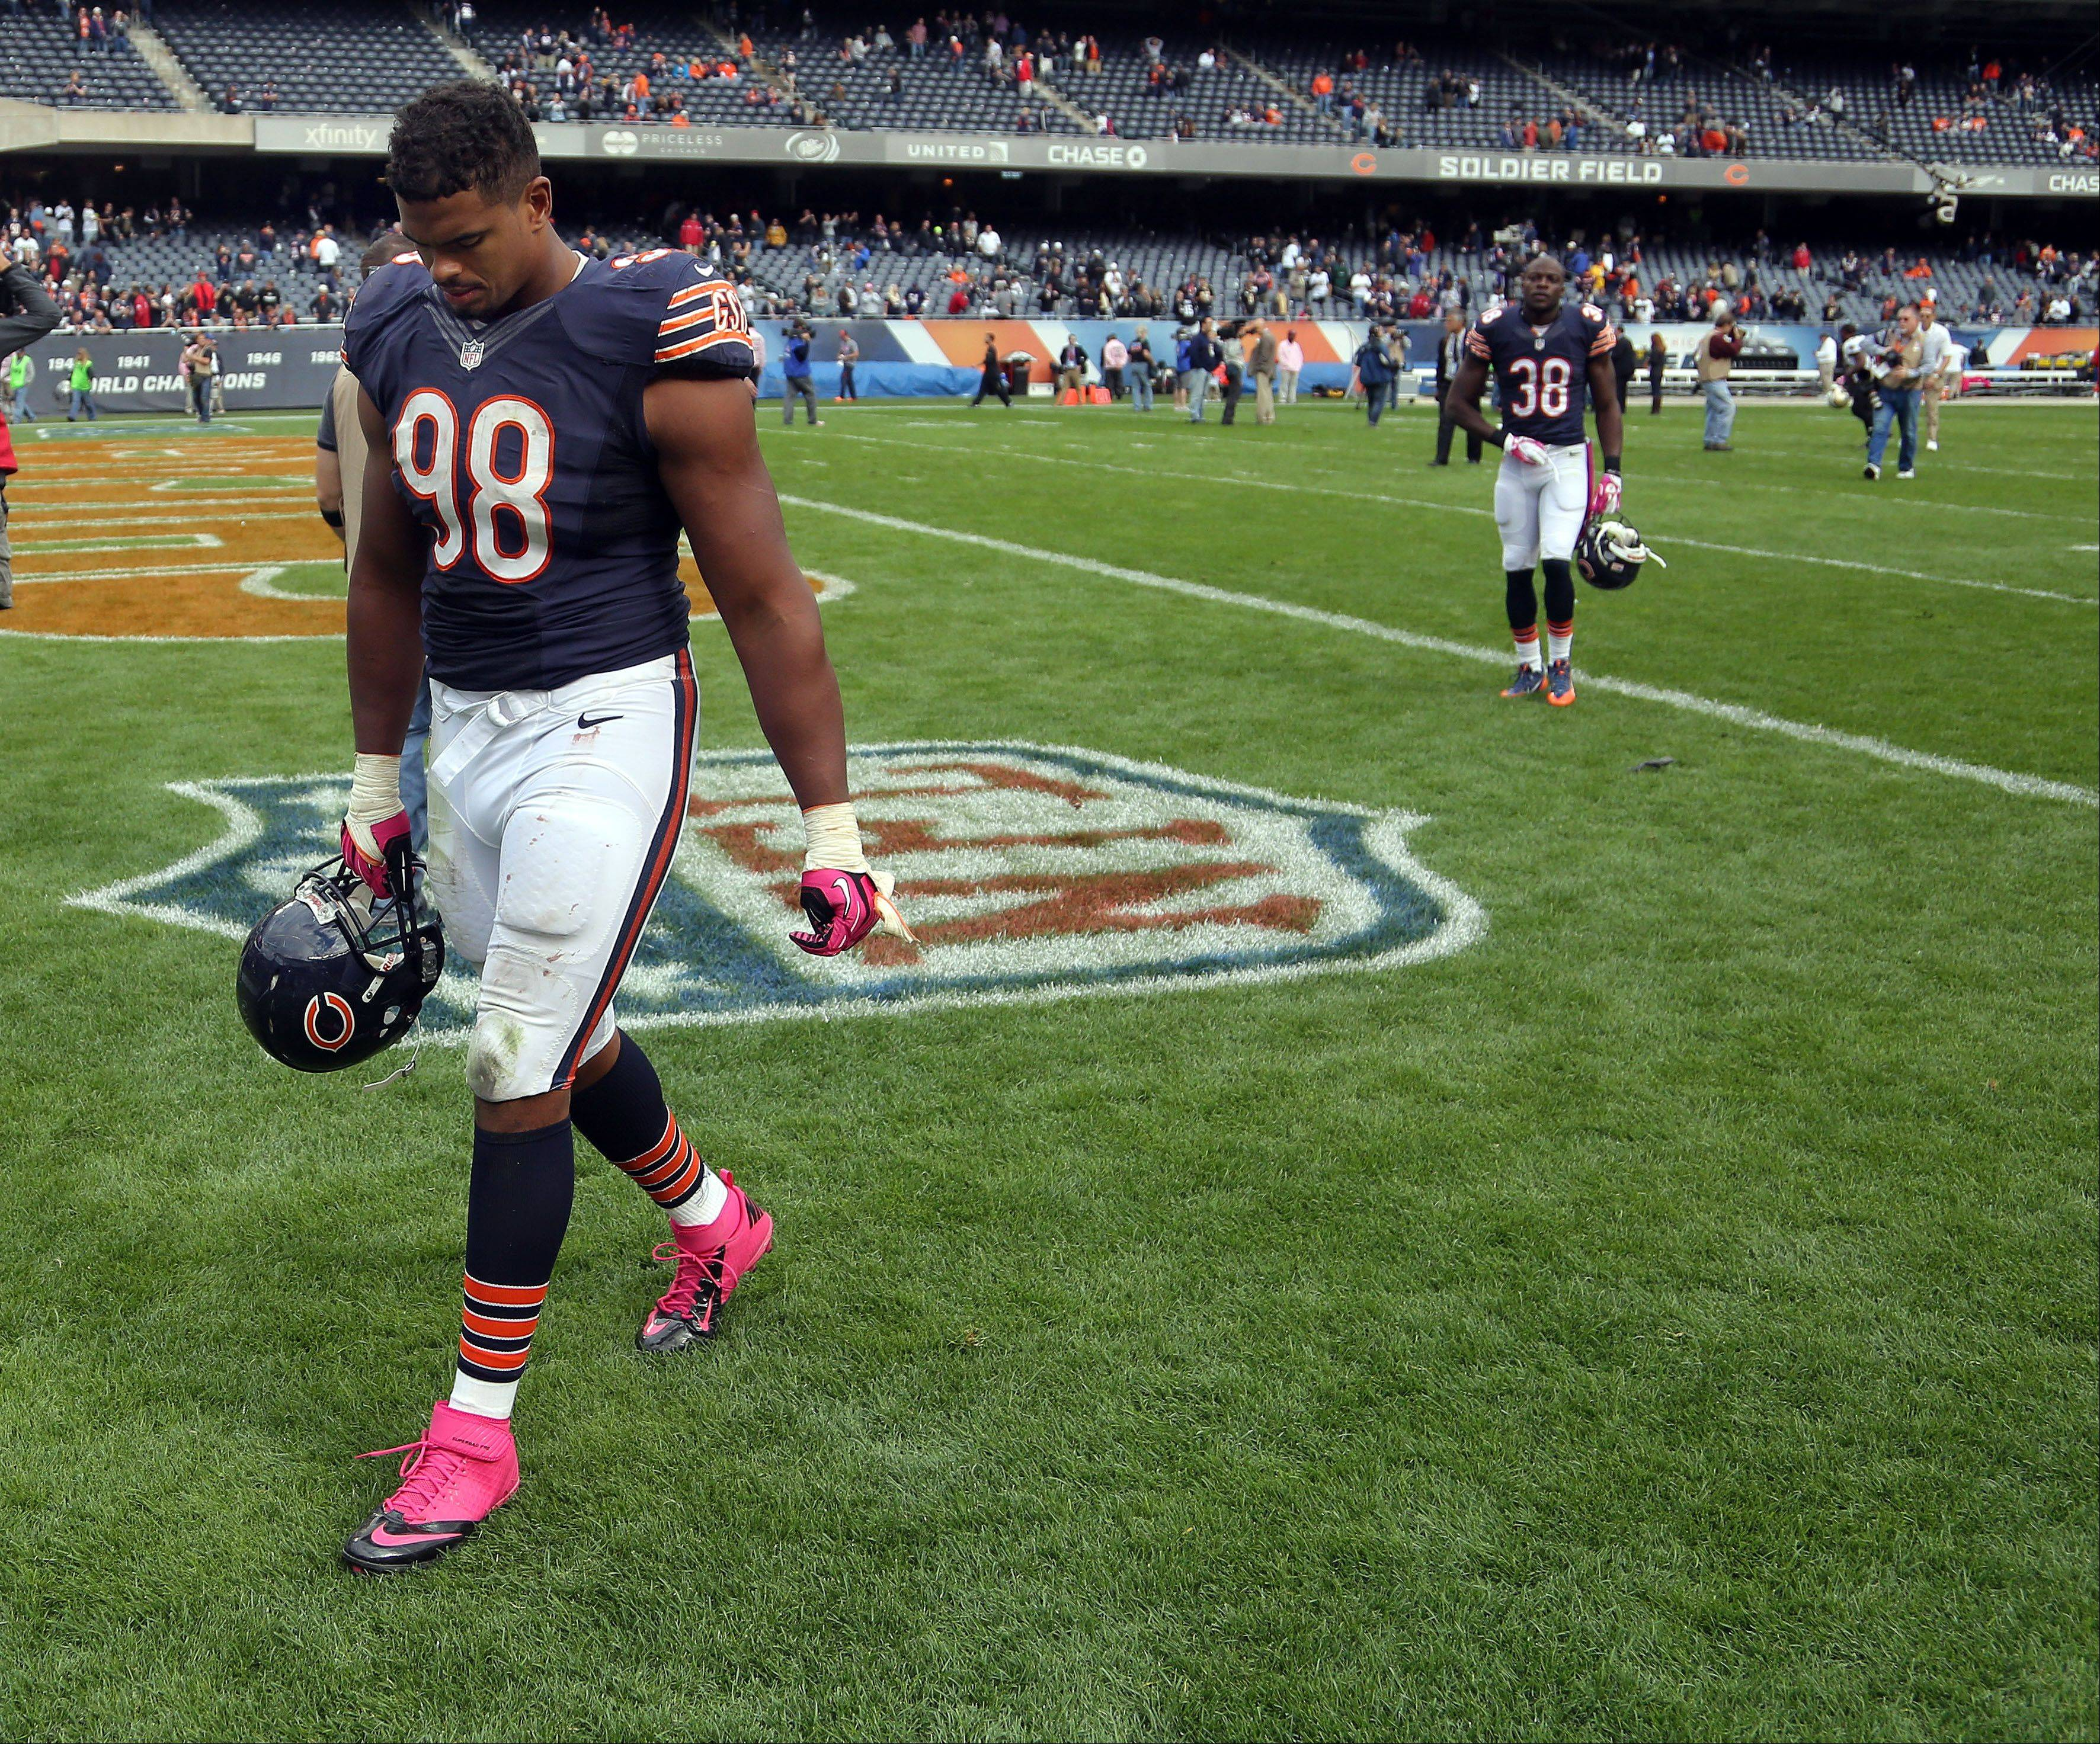 Chicago Bears defensive end Corey Wootton walks off the field after the Bears 26-18 loss to the New Orleans Saints Sunday.